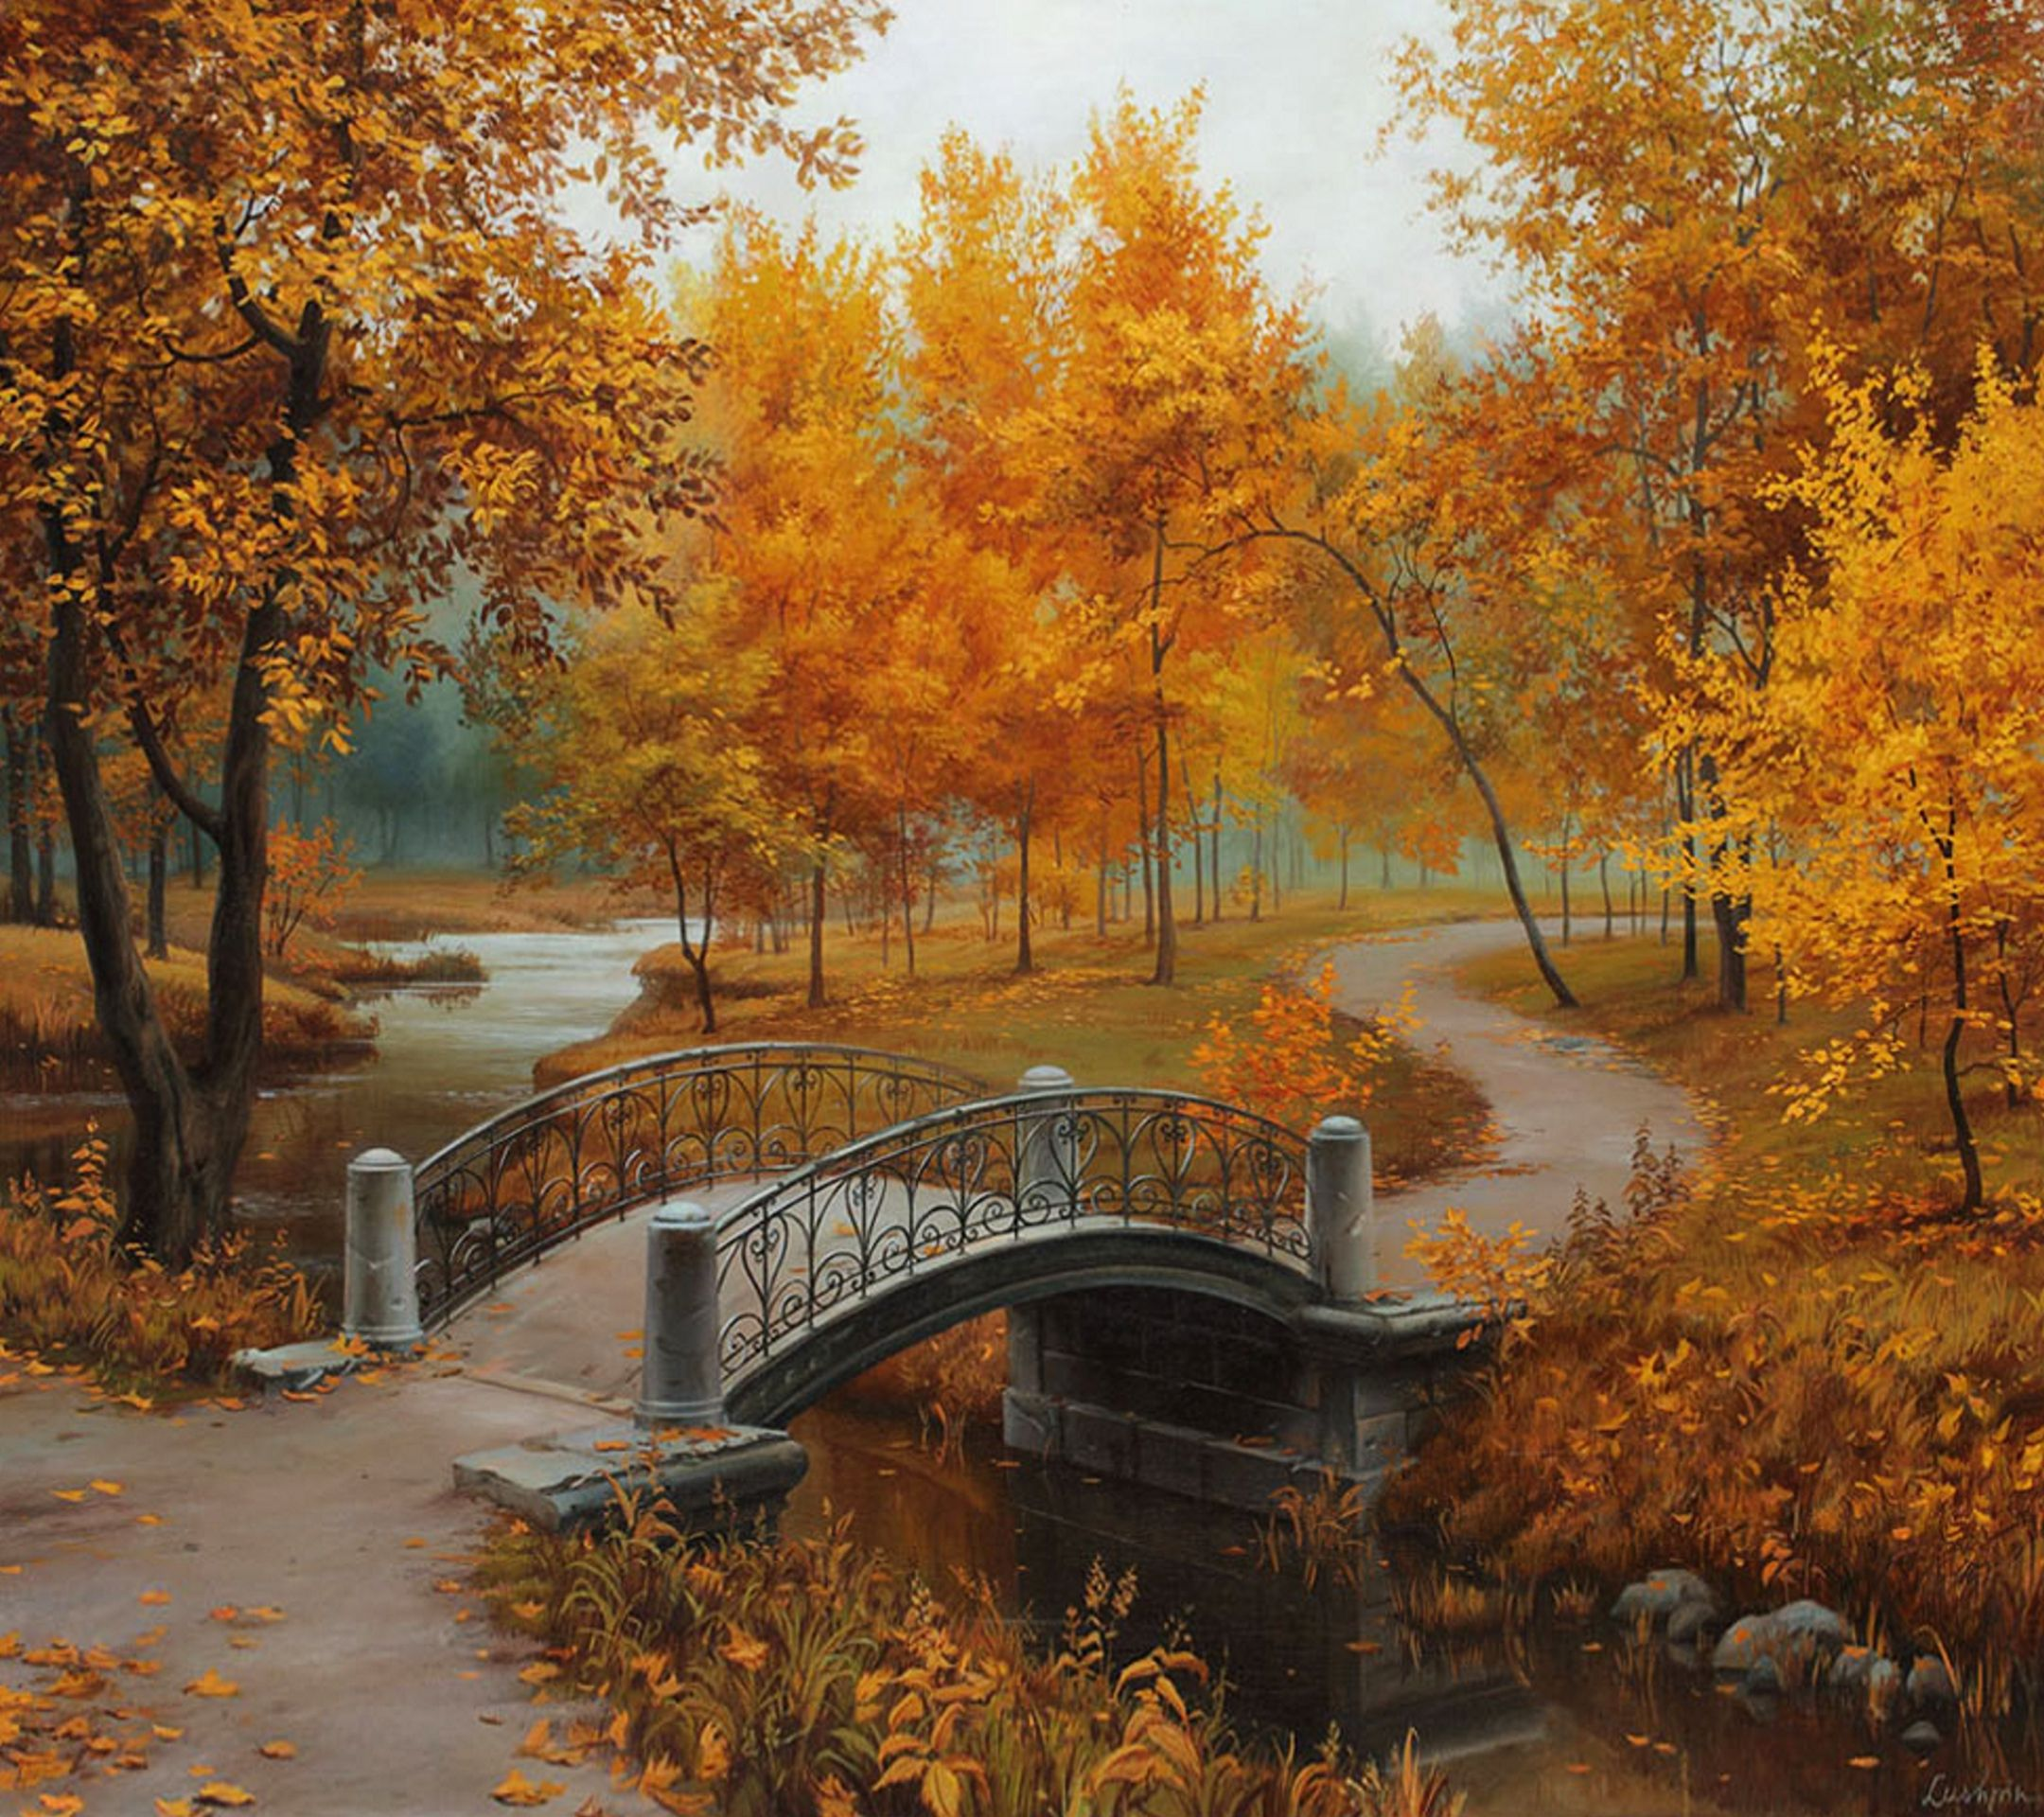 Autumn Season Scene Painting by numbers